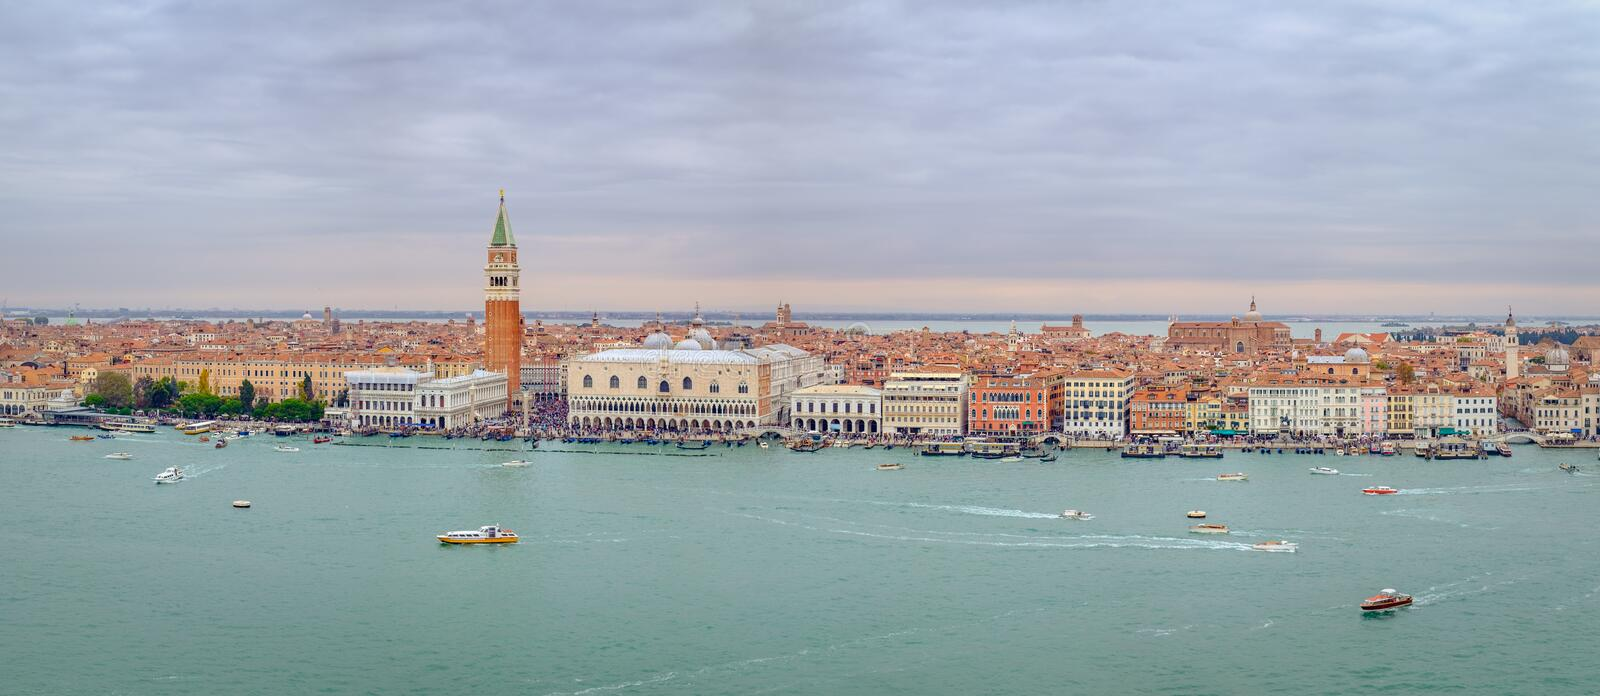 Panoramic cityscape view of Venice lagoon, Italy royalty free stock images